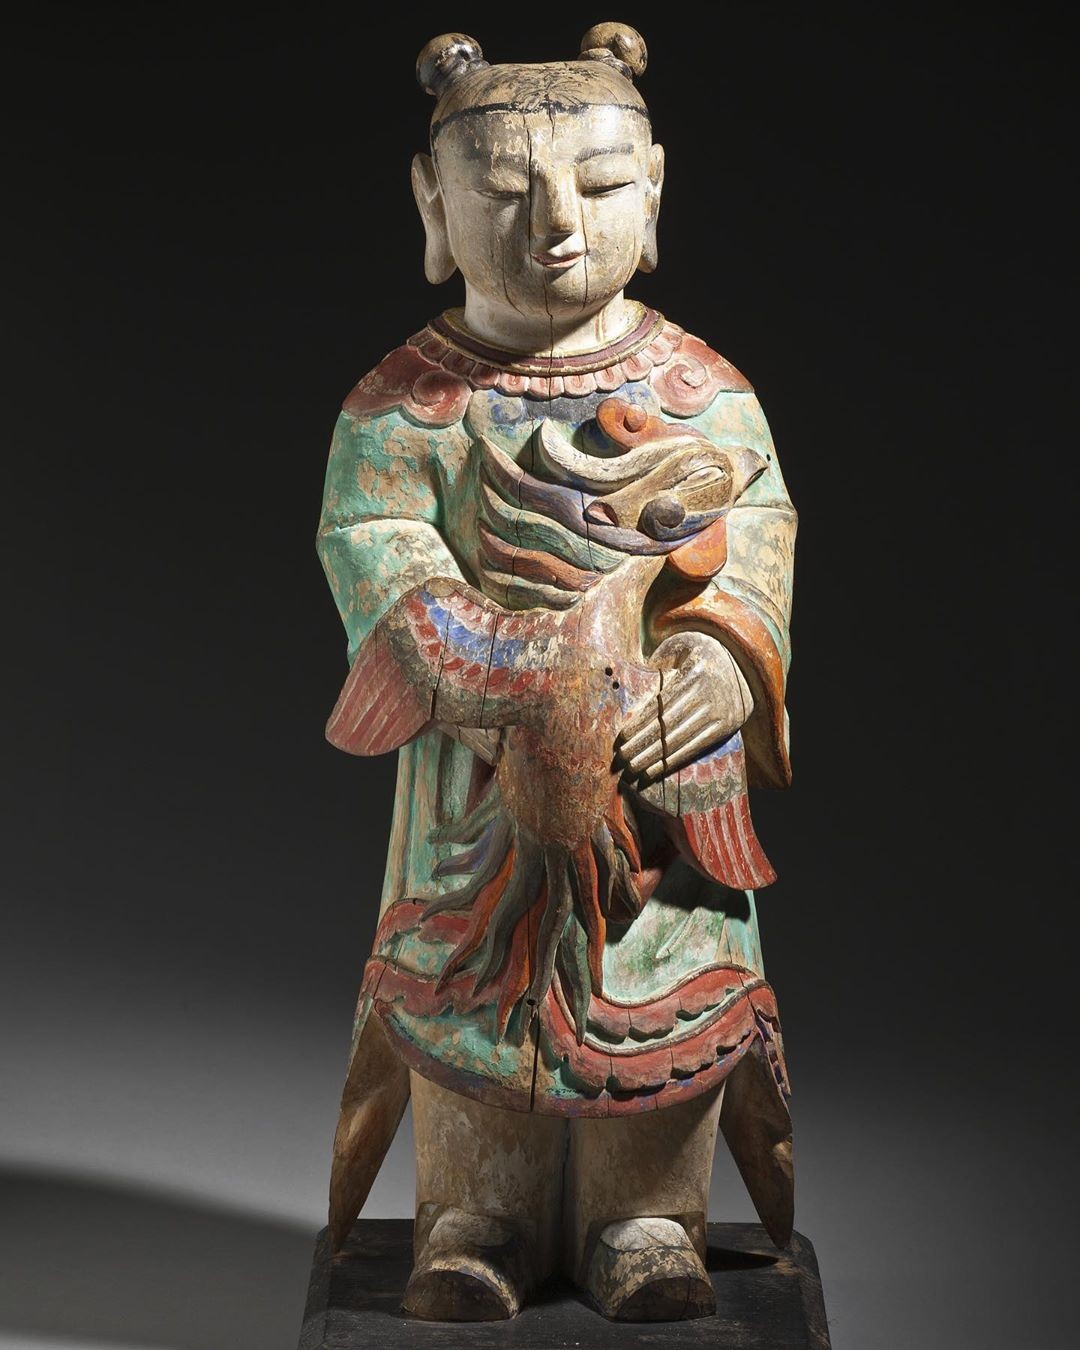 The carved figure …